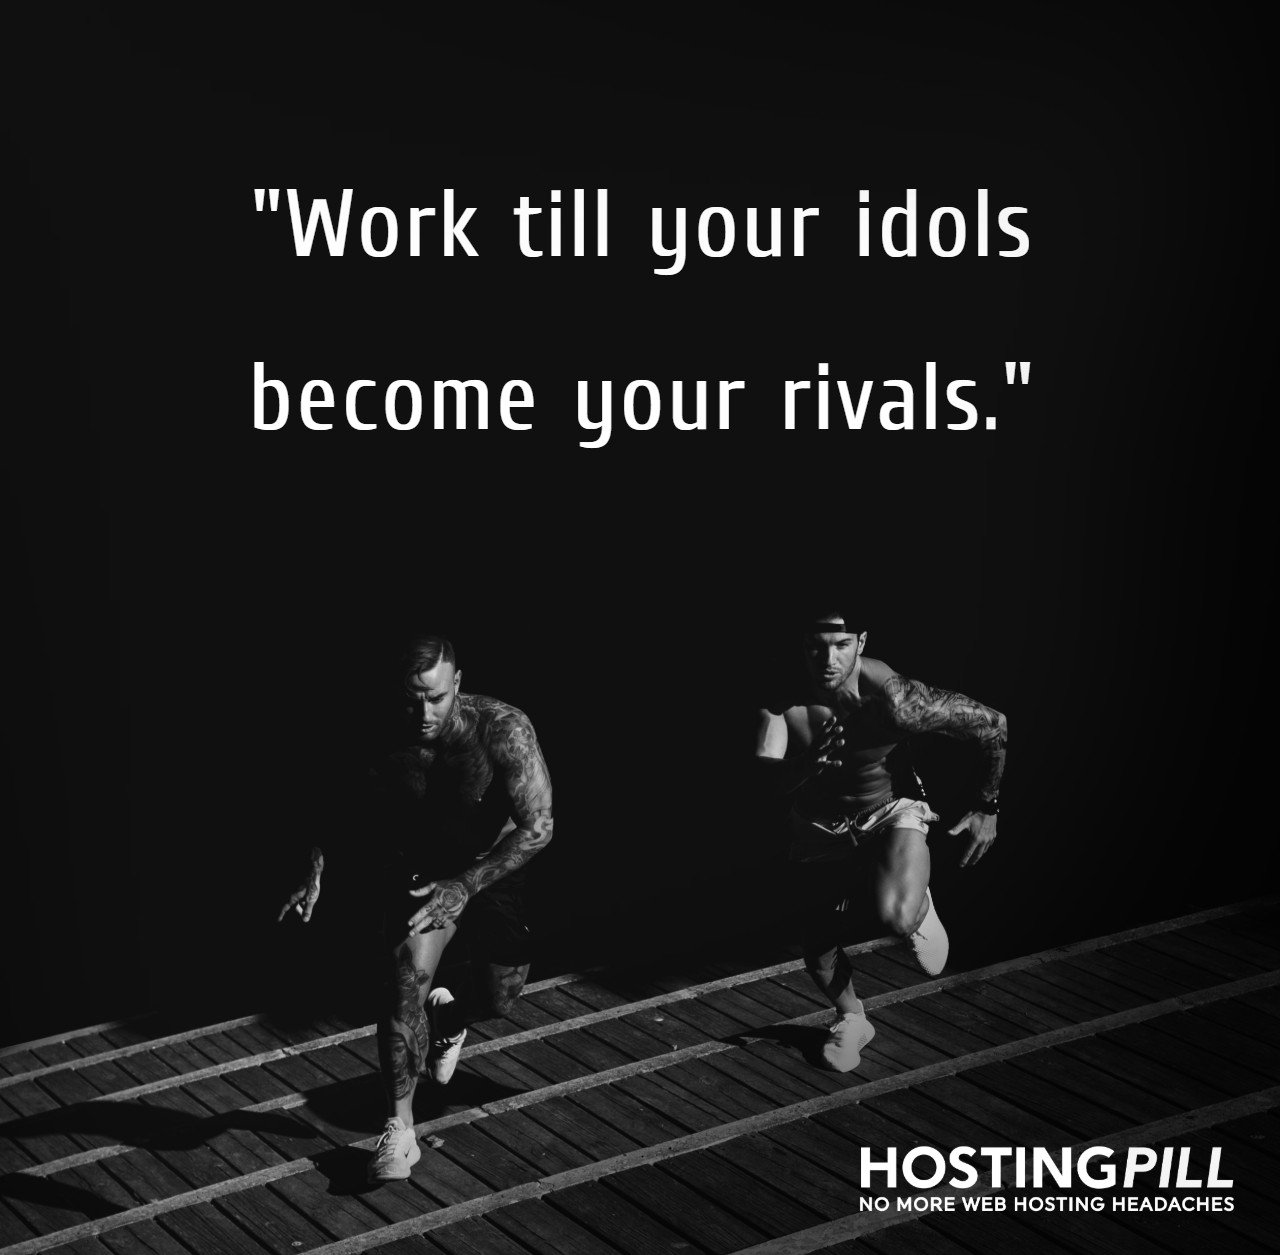 Work till your idols becomes your rivals.